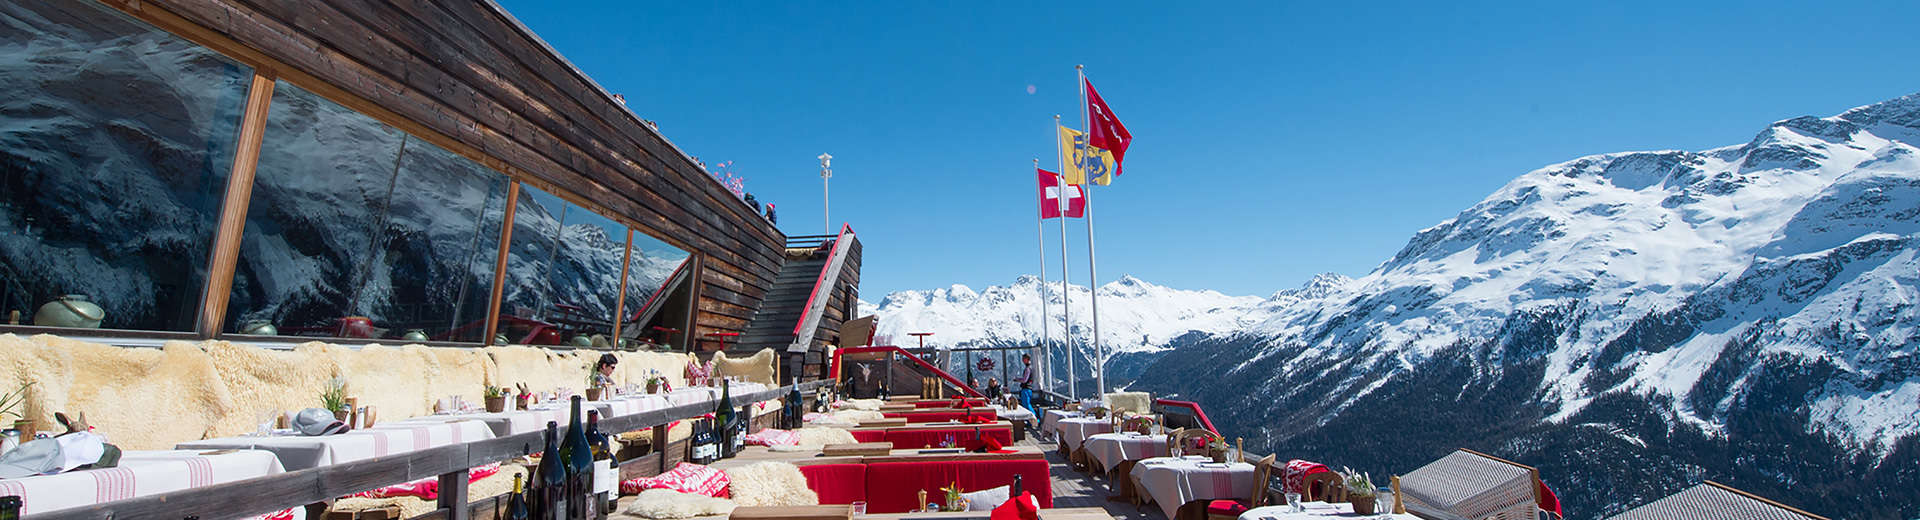 The terrace at El Paradiso in St. Moritz